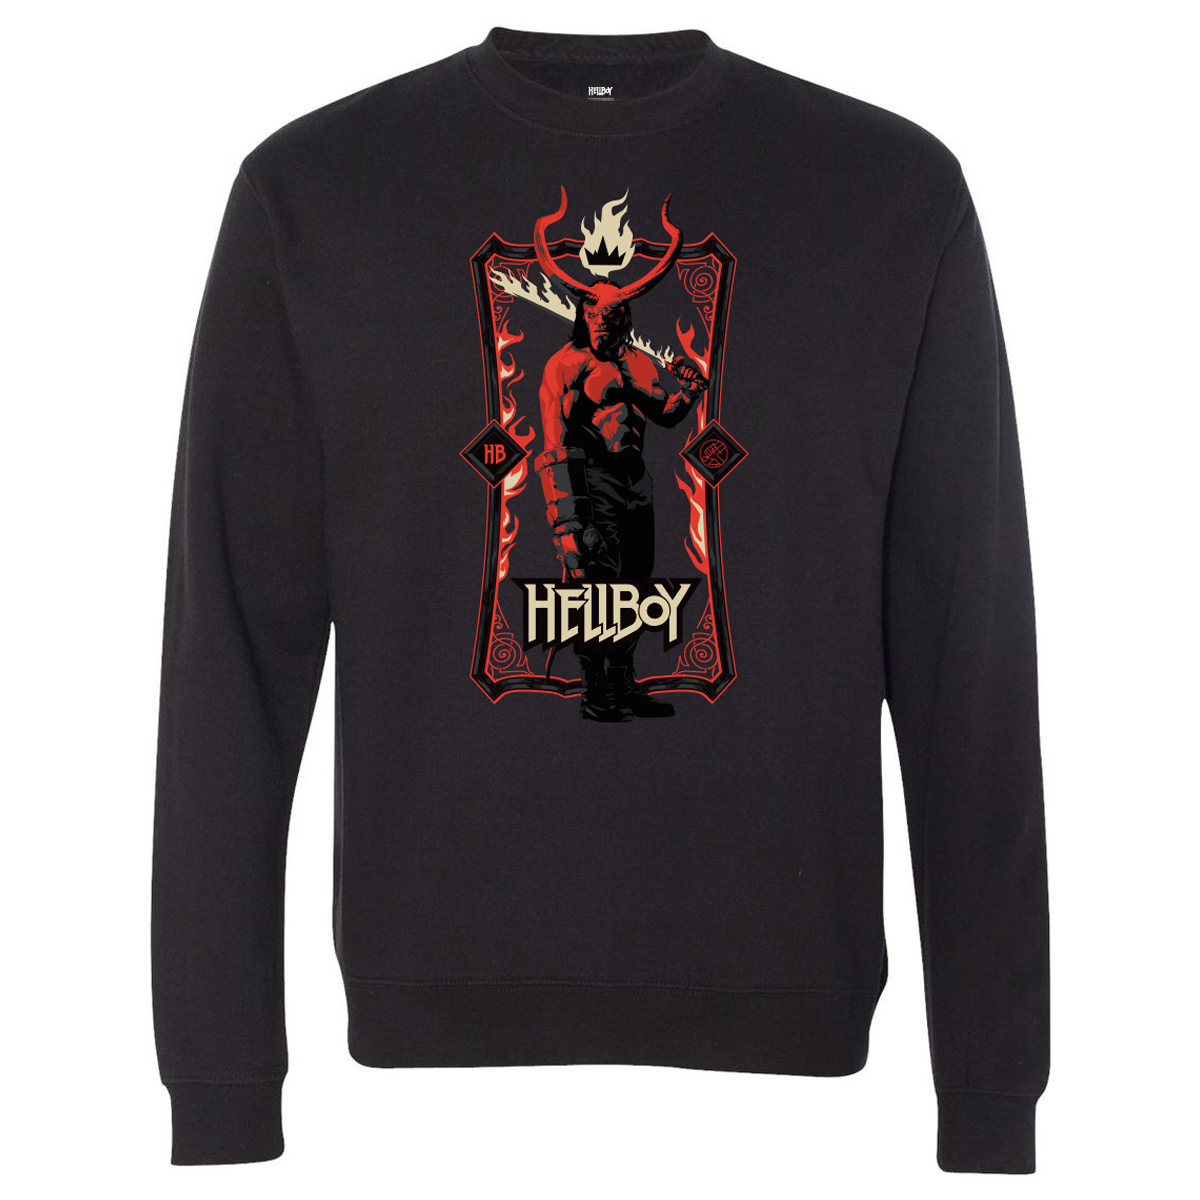 Hellboy Heavy Metal Crewneck Sweatshirt